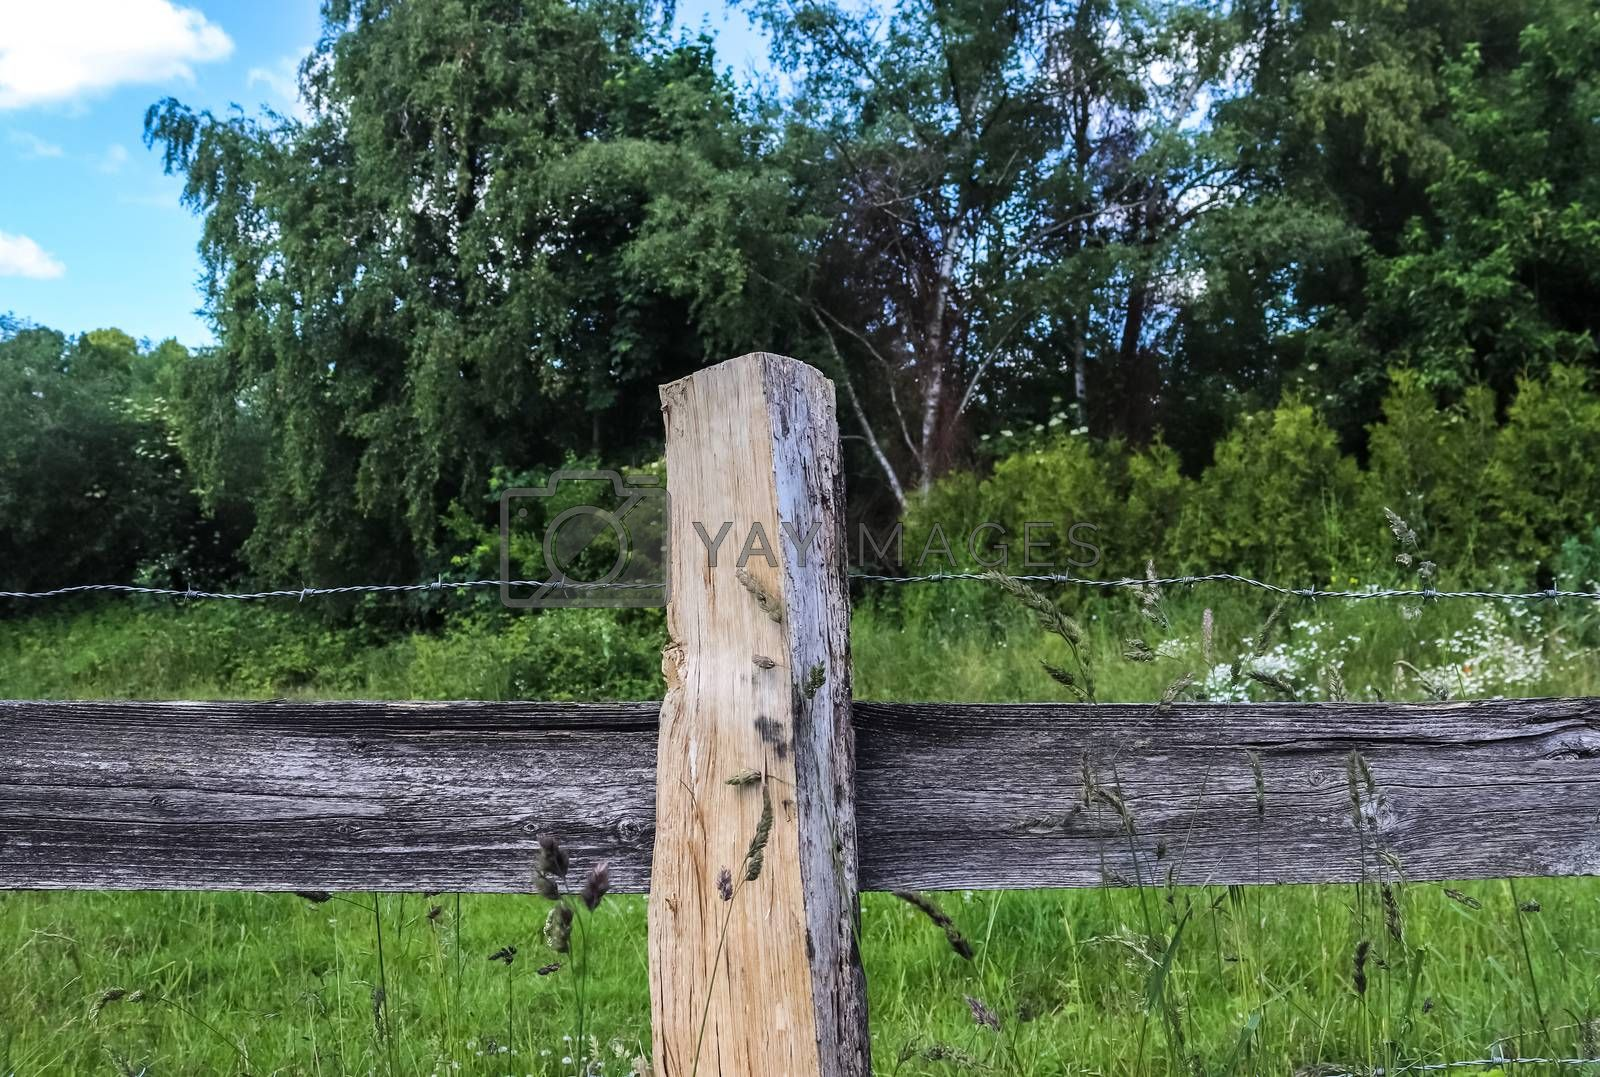 Beautiful wooden horse fence at an agricultural field on a sunny day